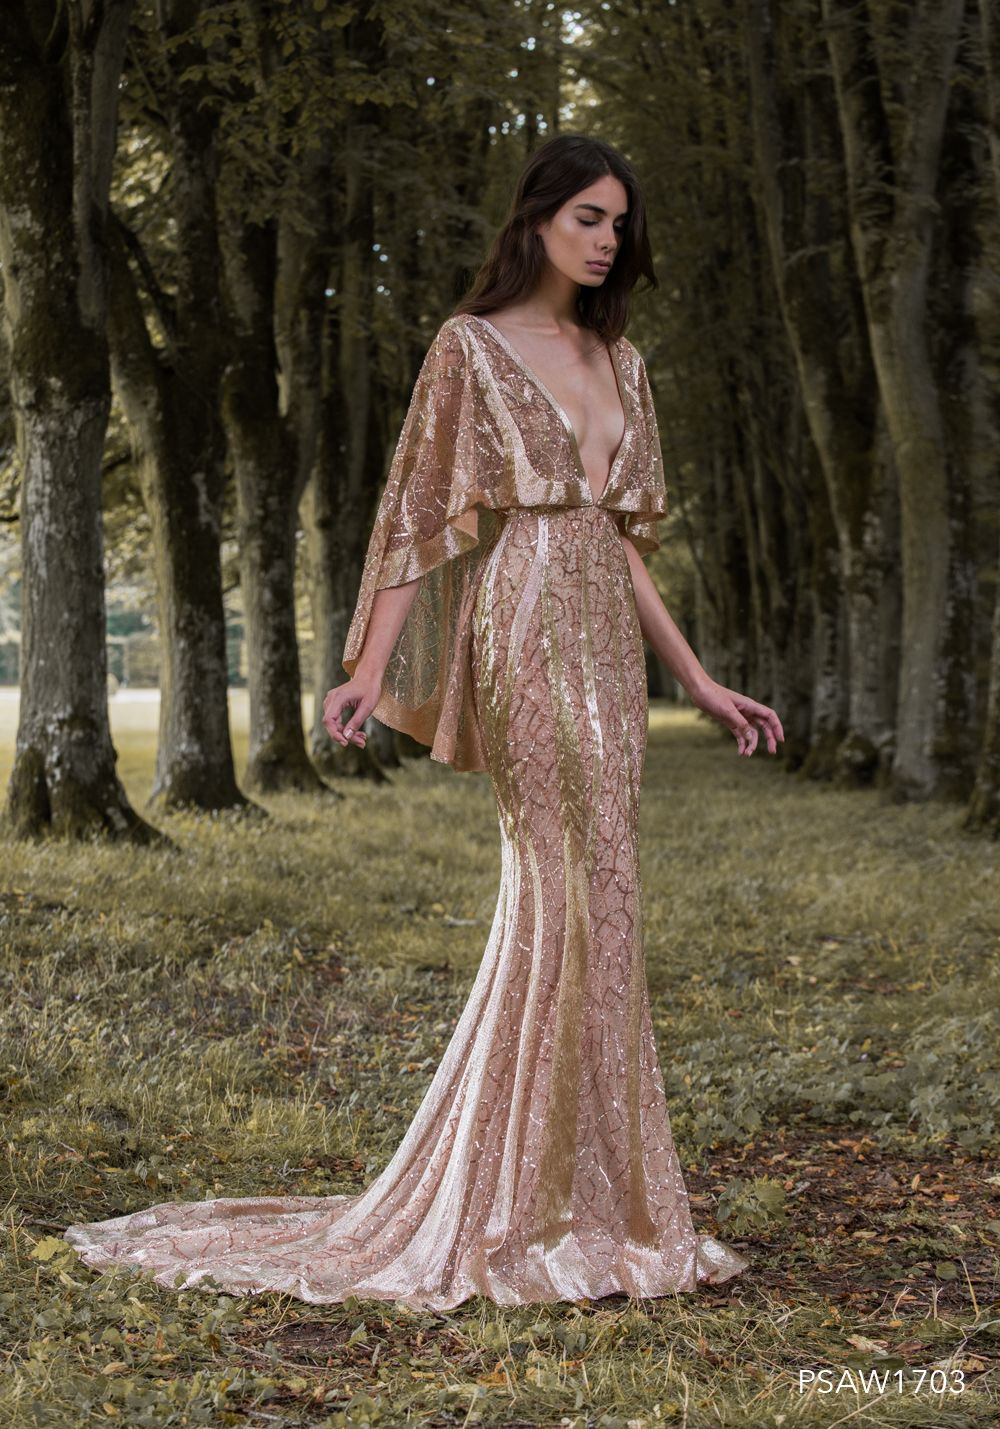 Psaw caped gown with molten rose gold embroidery fashion